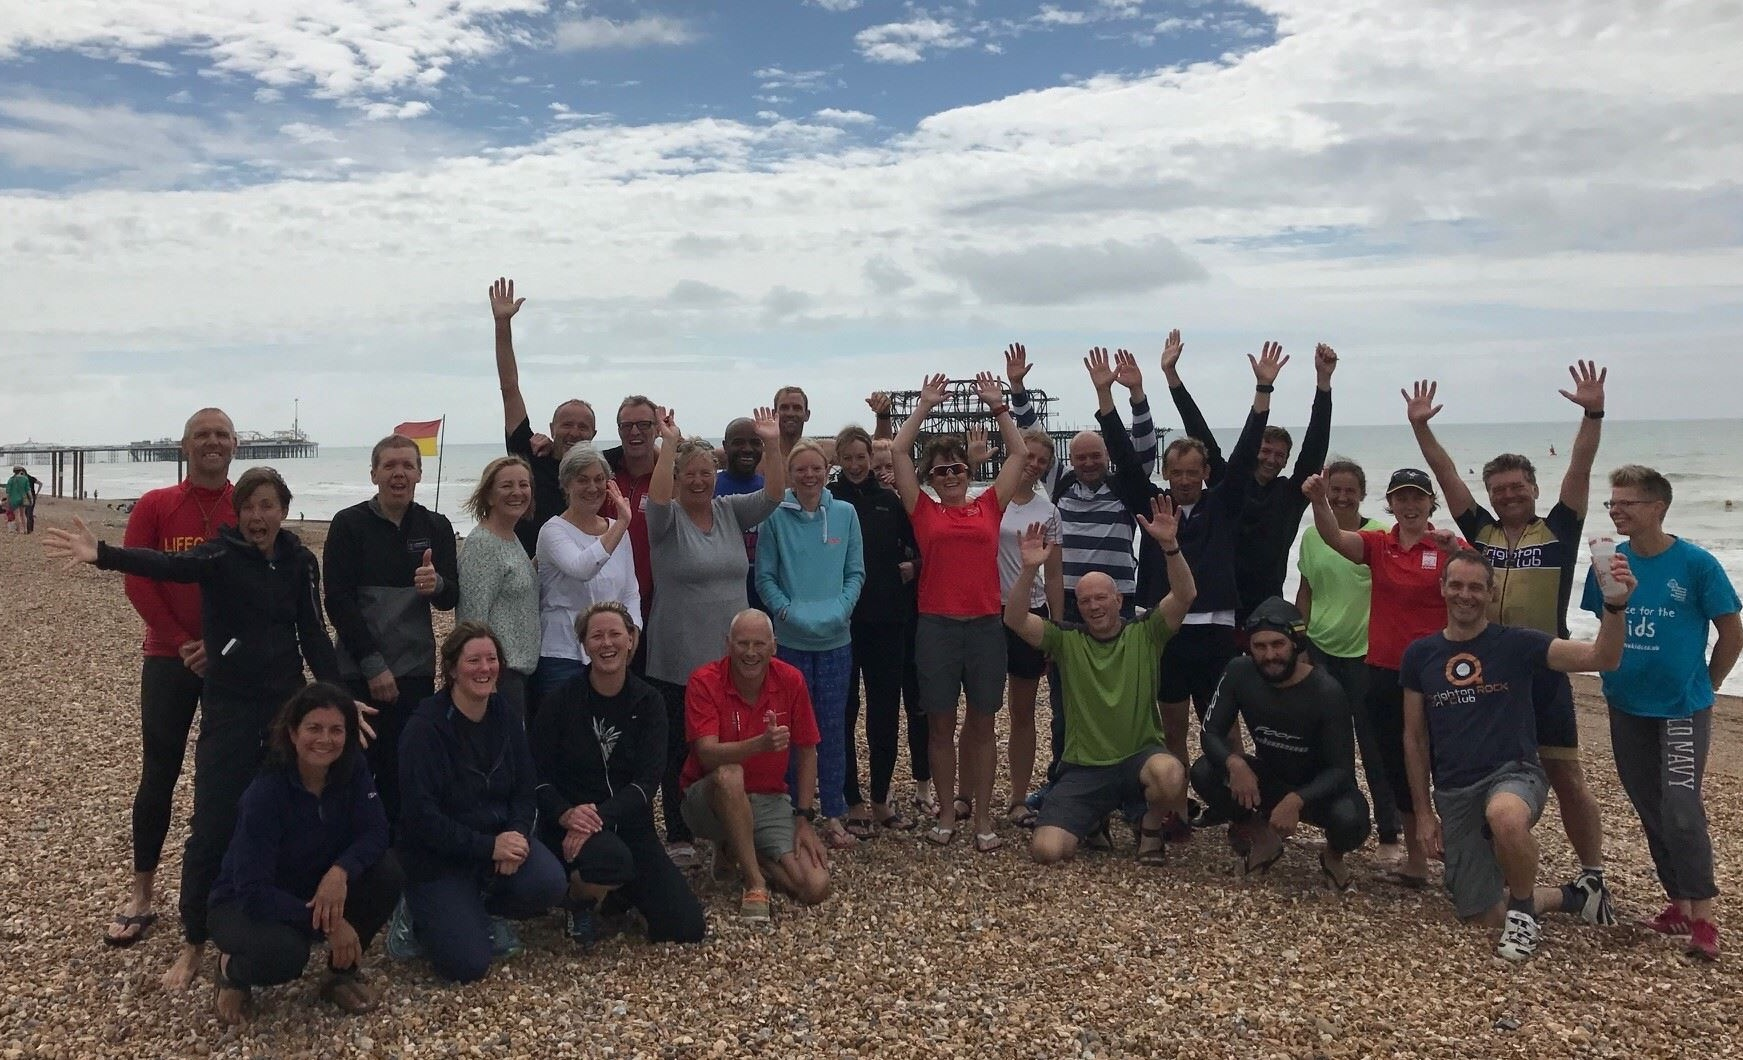 Banking and celebrating a one to many, one off Open Water Swim session with tri novices, with Brighton Tri Club